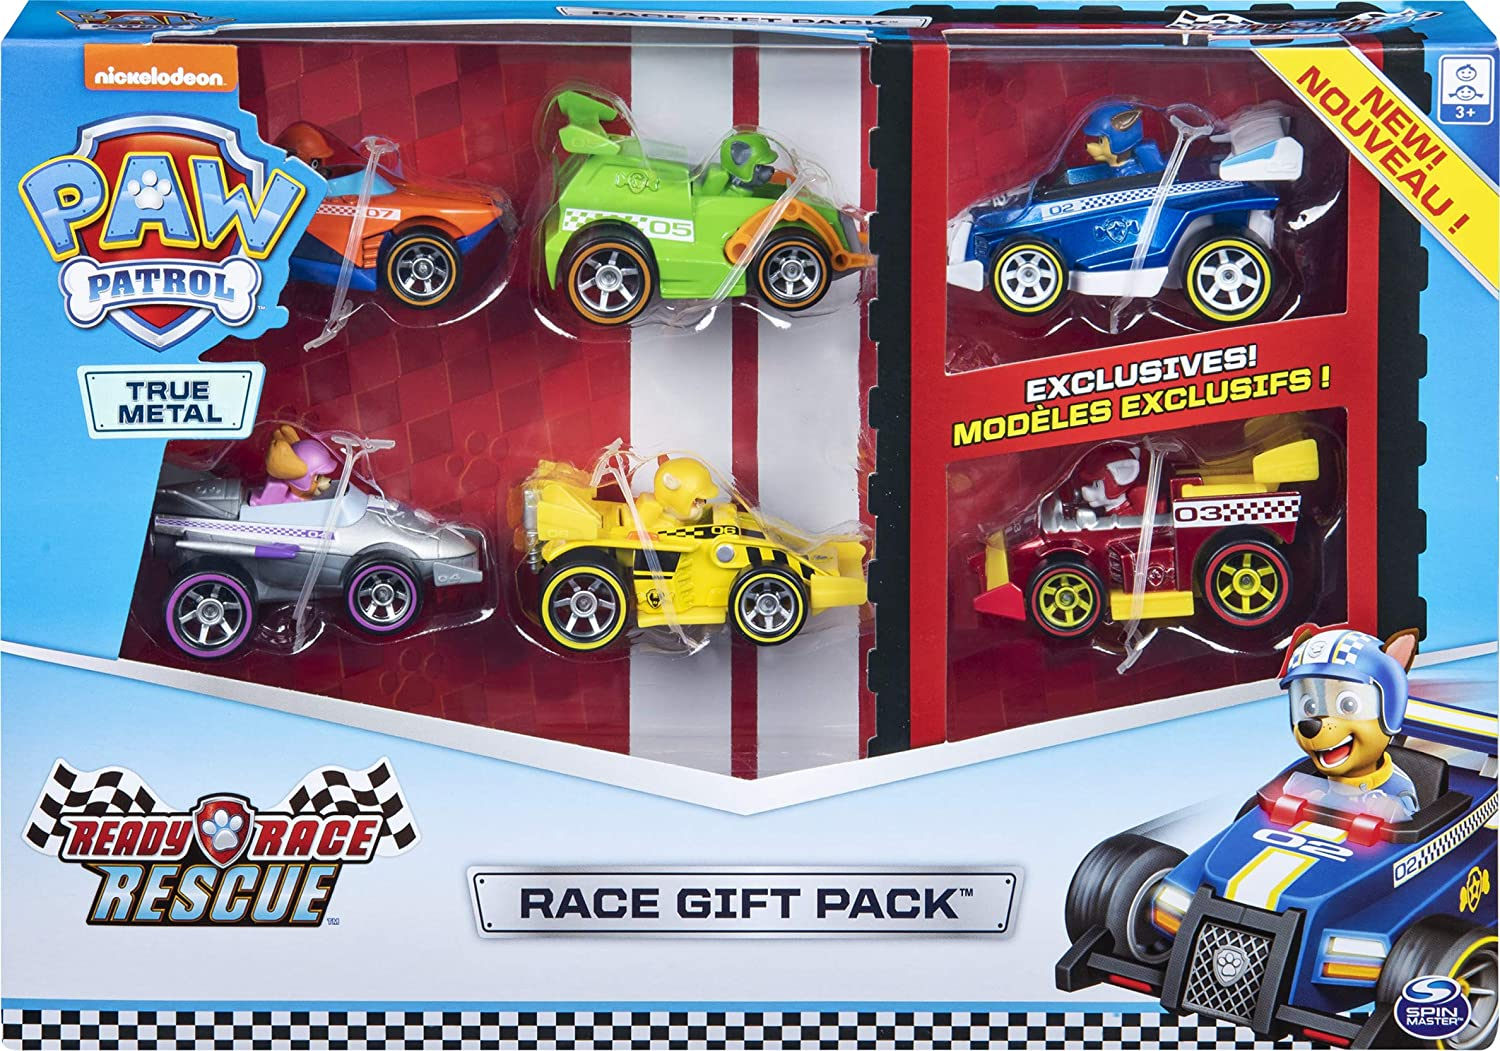 PAW Patrol – True Metal Ready Race Rescue Gift Pack of 6 Race Cars 35% OFF £15 @ Amazon